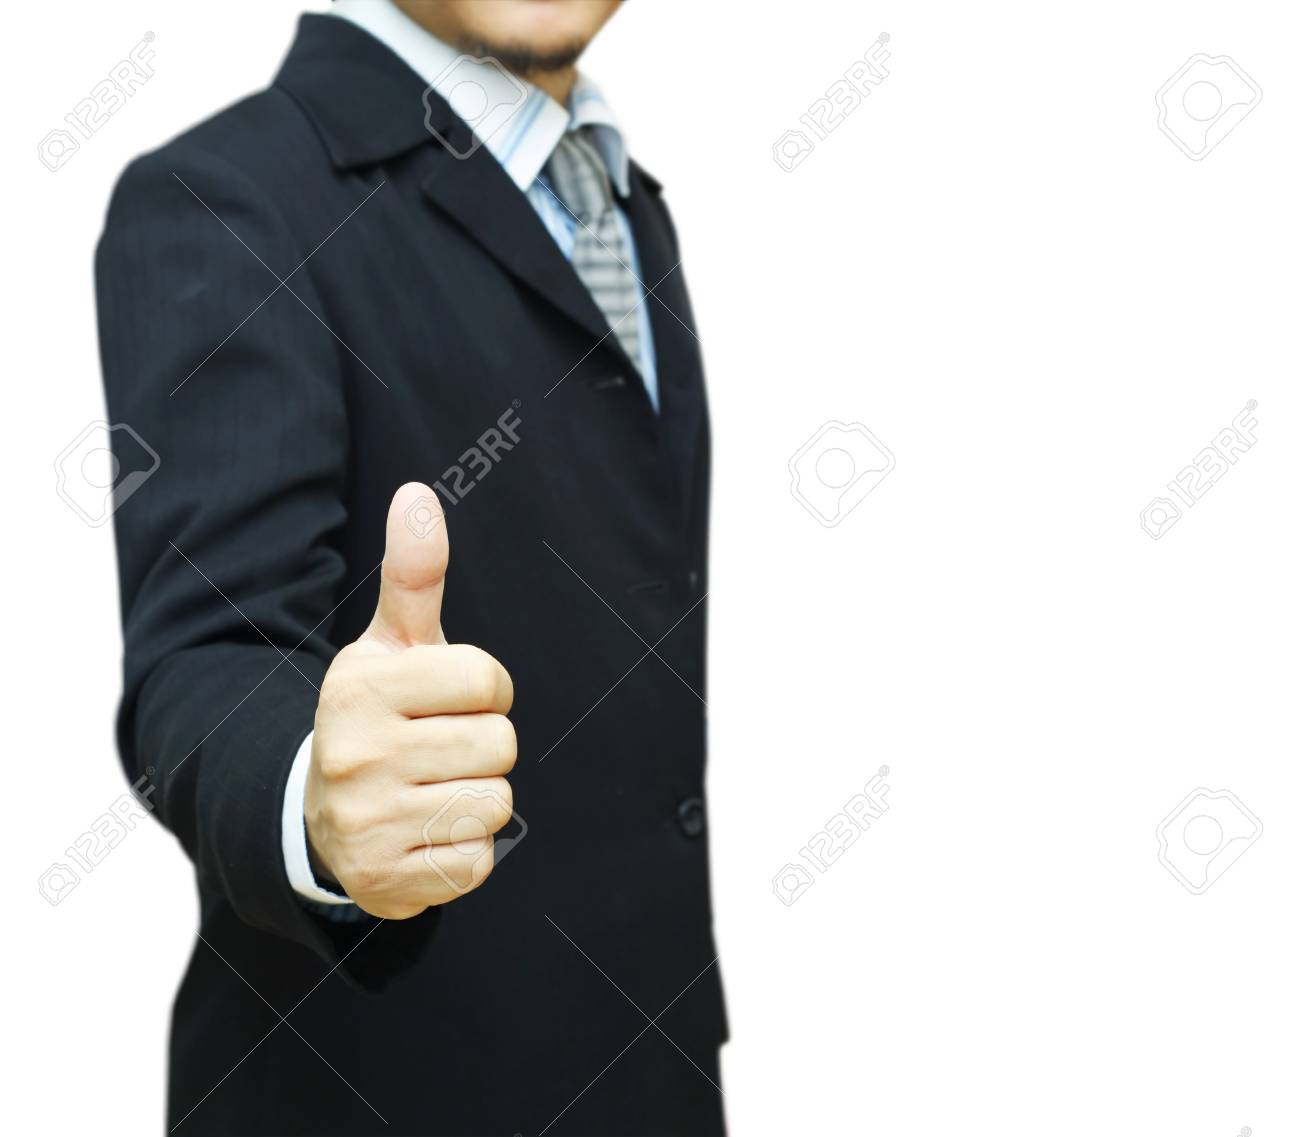 Businessman in suit with thumb up on white background Stock Photo - 16924899